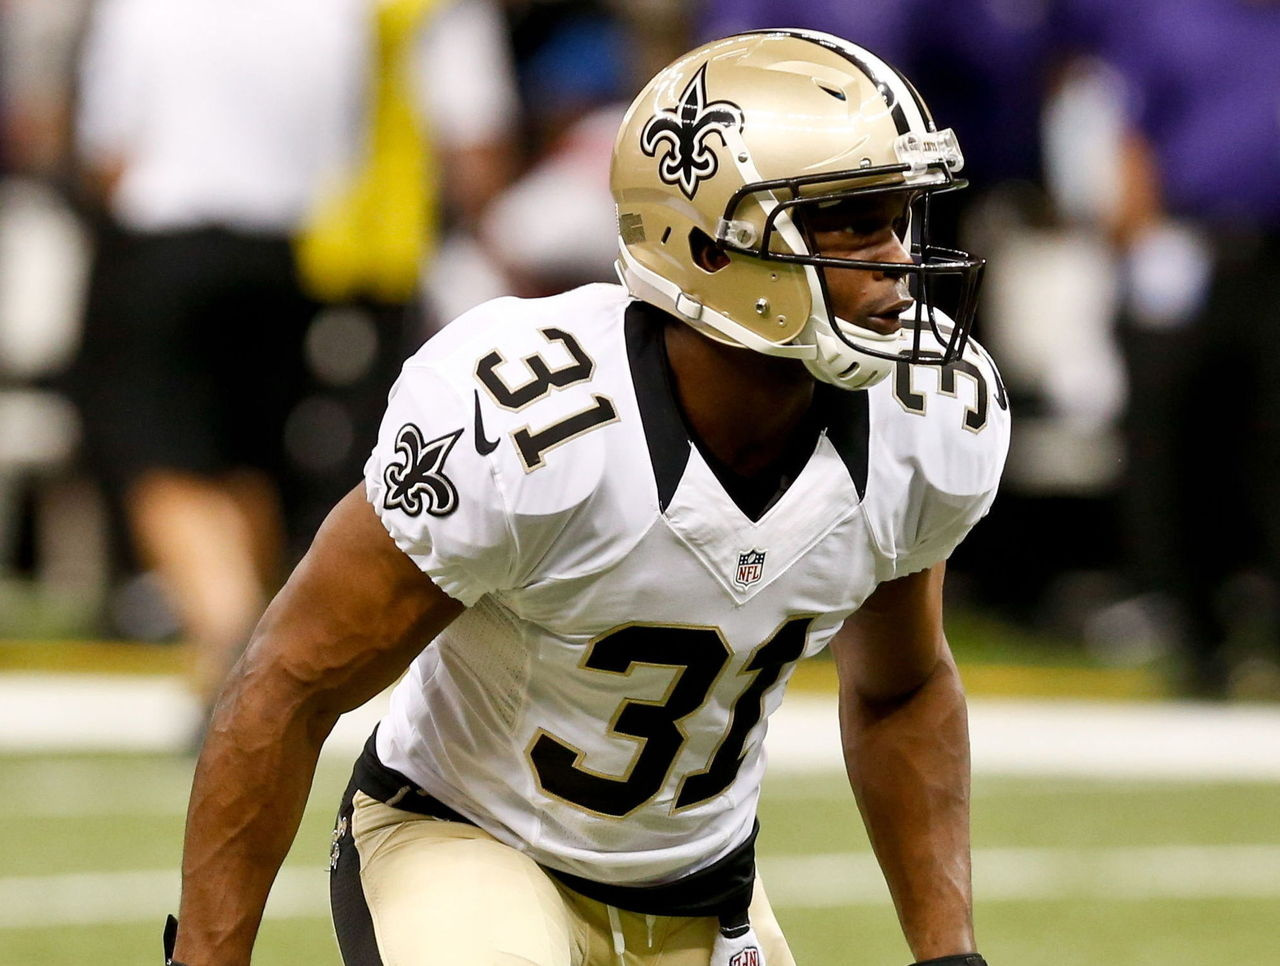 Report: Saints will release Byrd on opening day of free agency